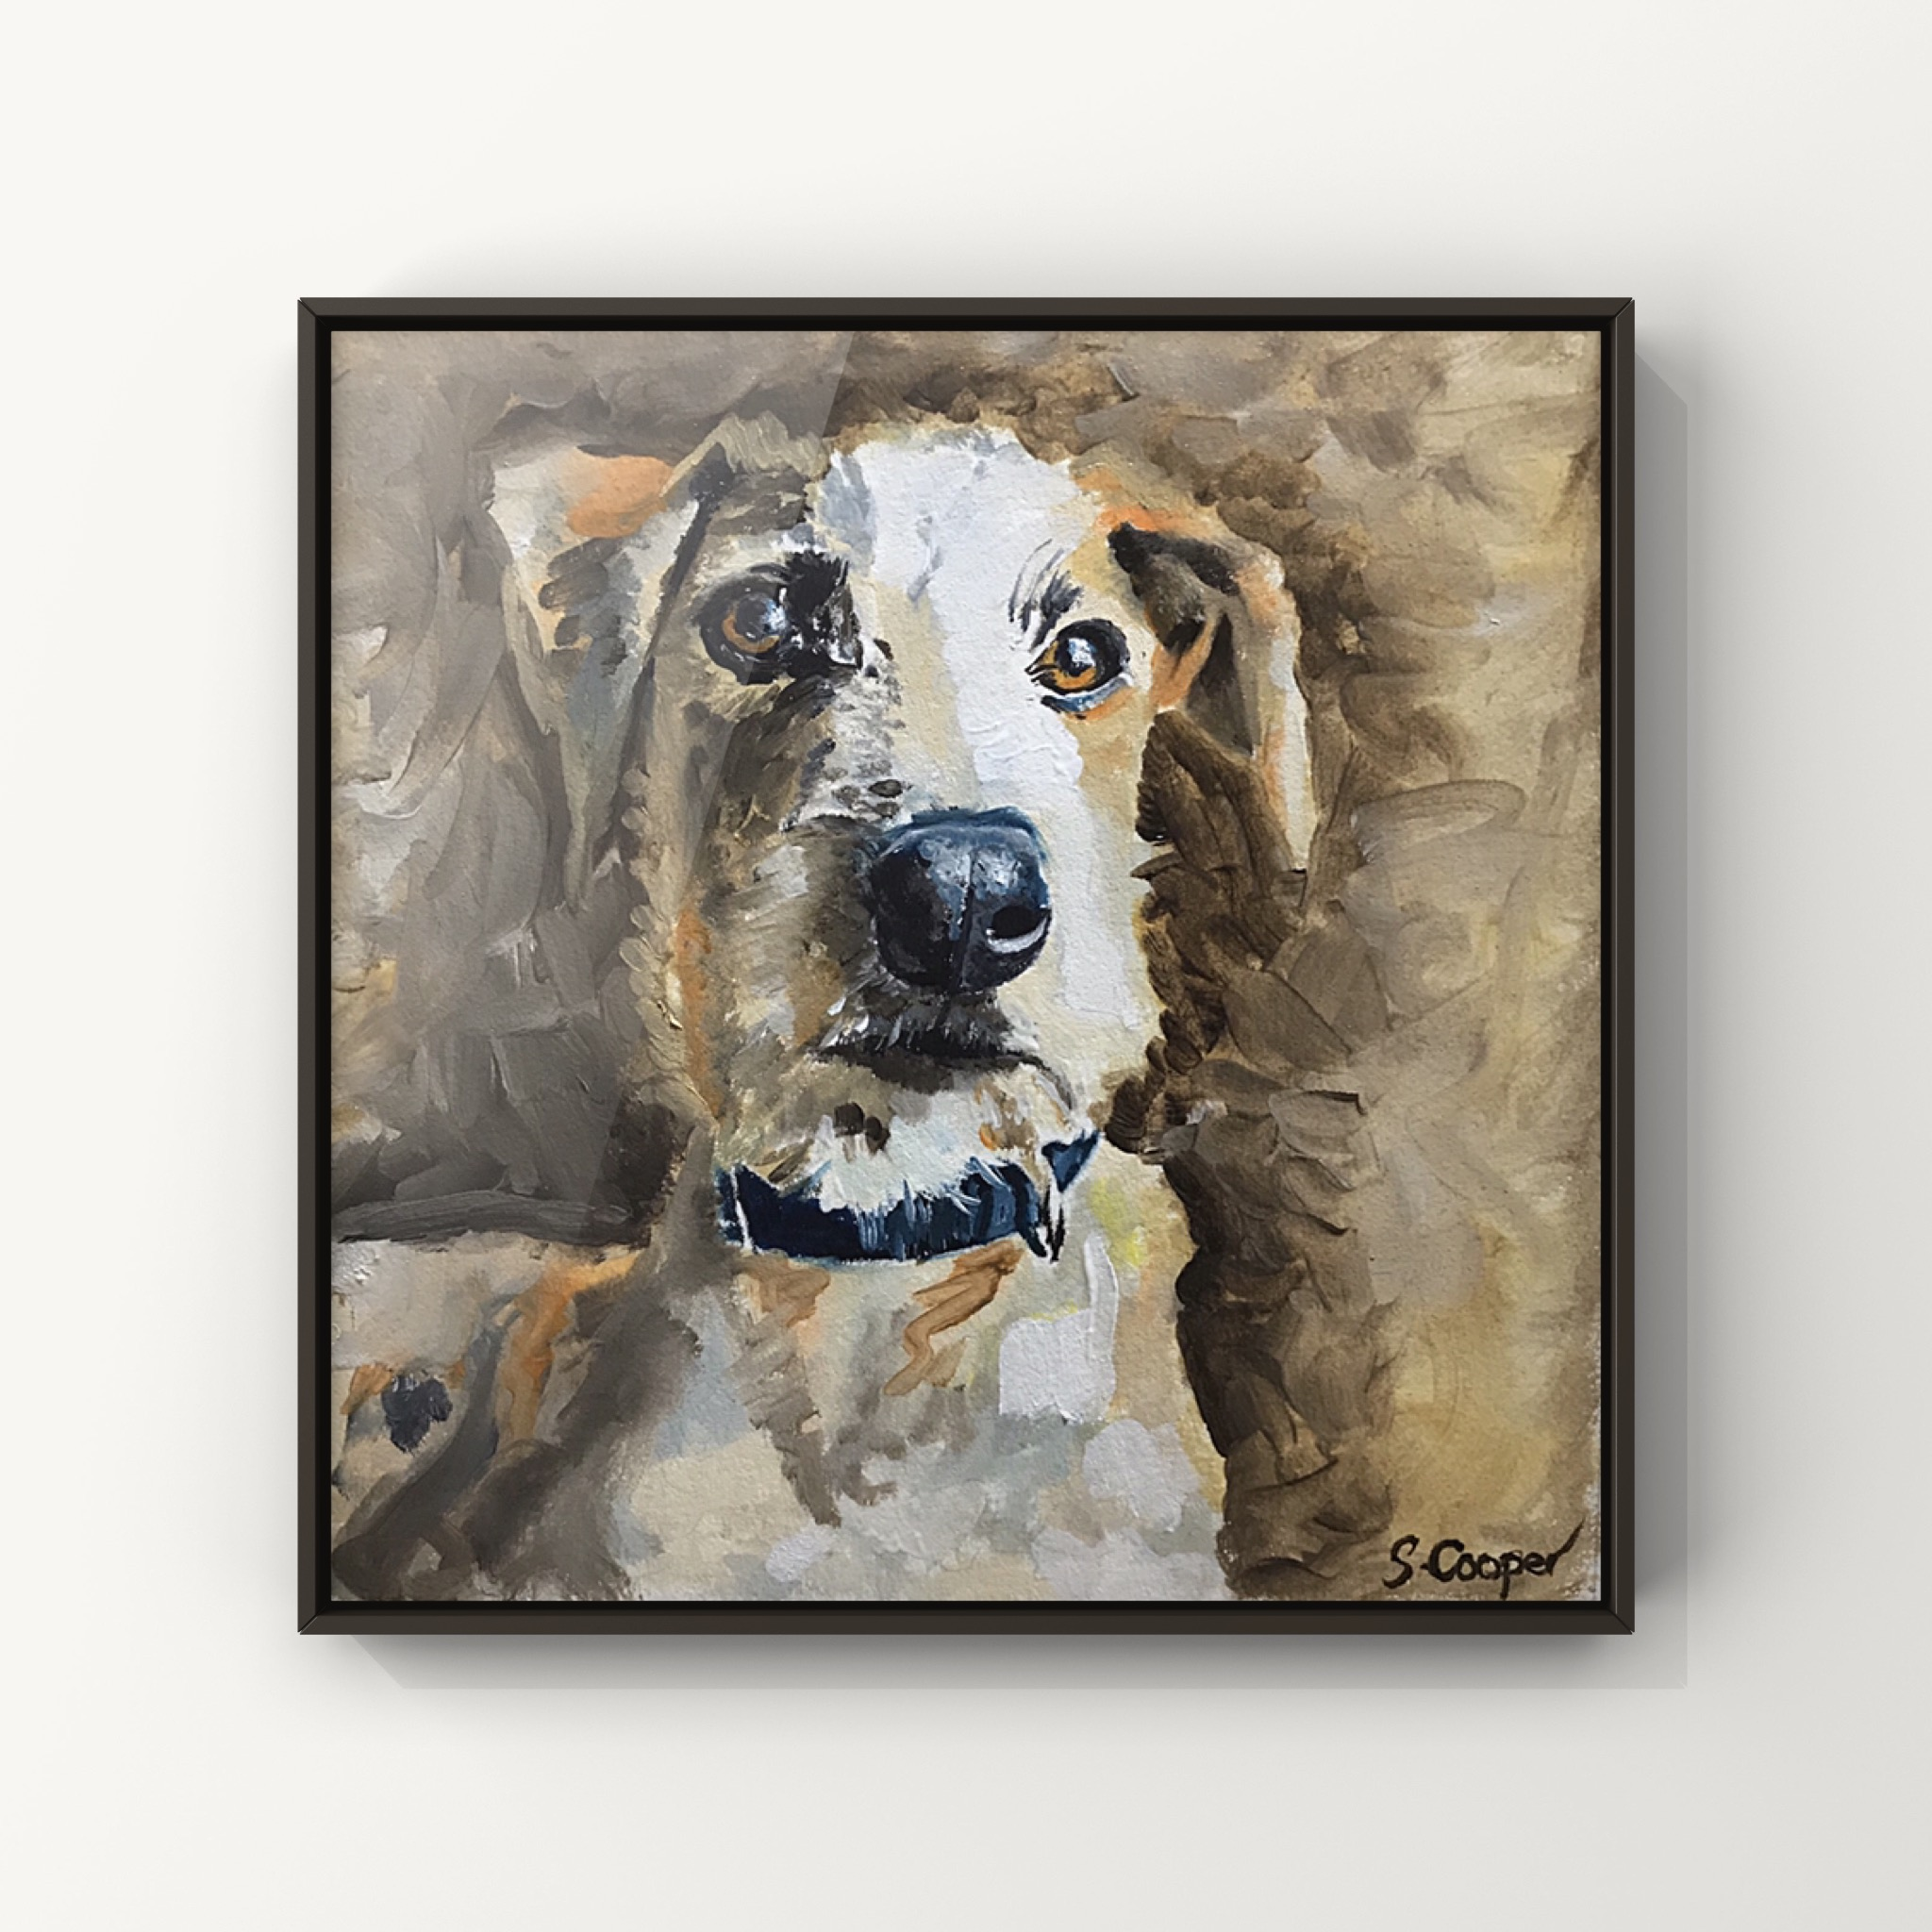 Feynman the Lurcher - Oils